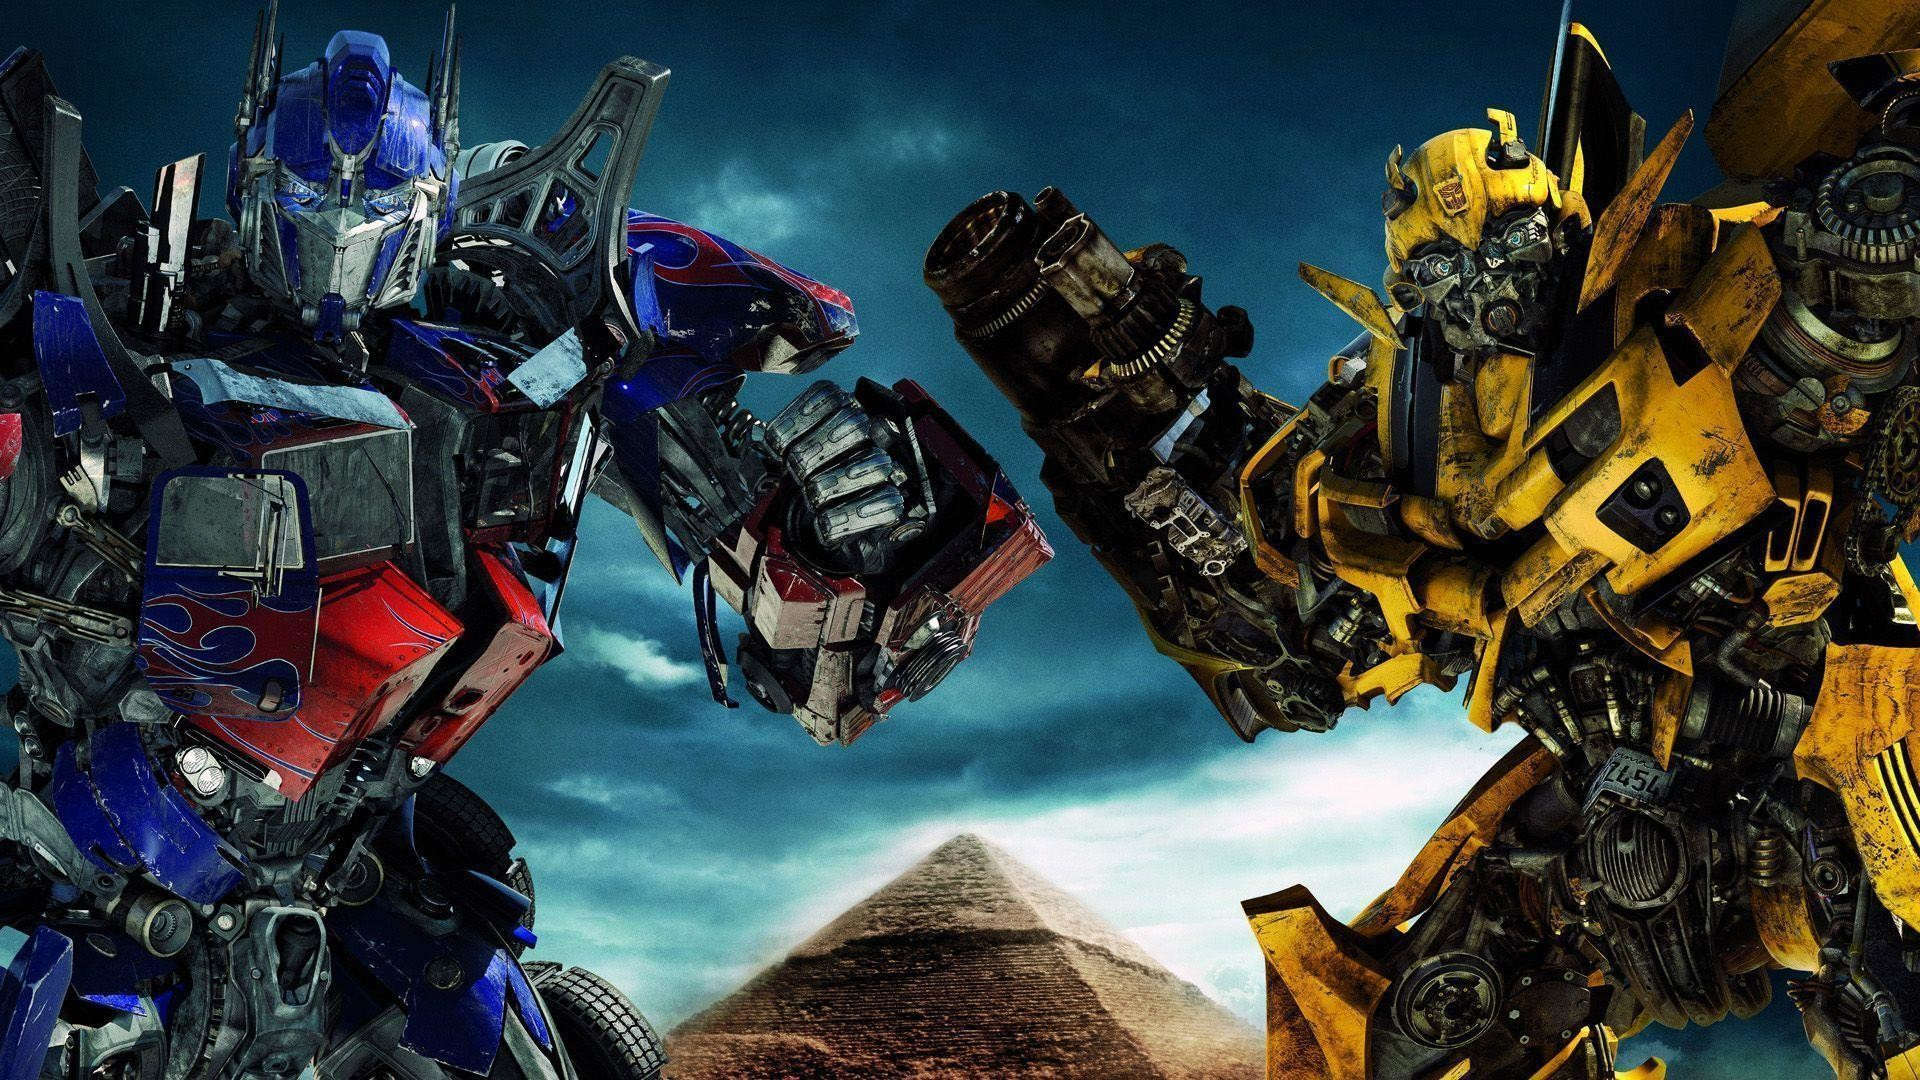 1920x1080 Optimus Prime Hd Wallpaper Vs Bumble Bee Best #5583 Wallpaper .